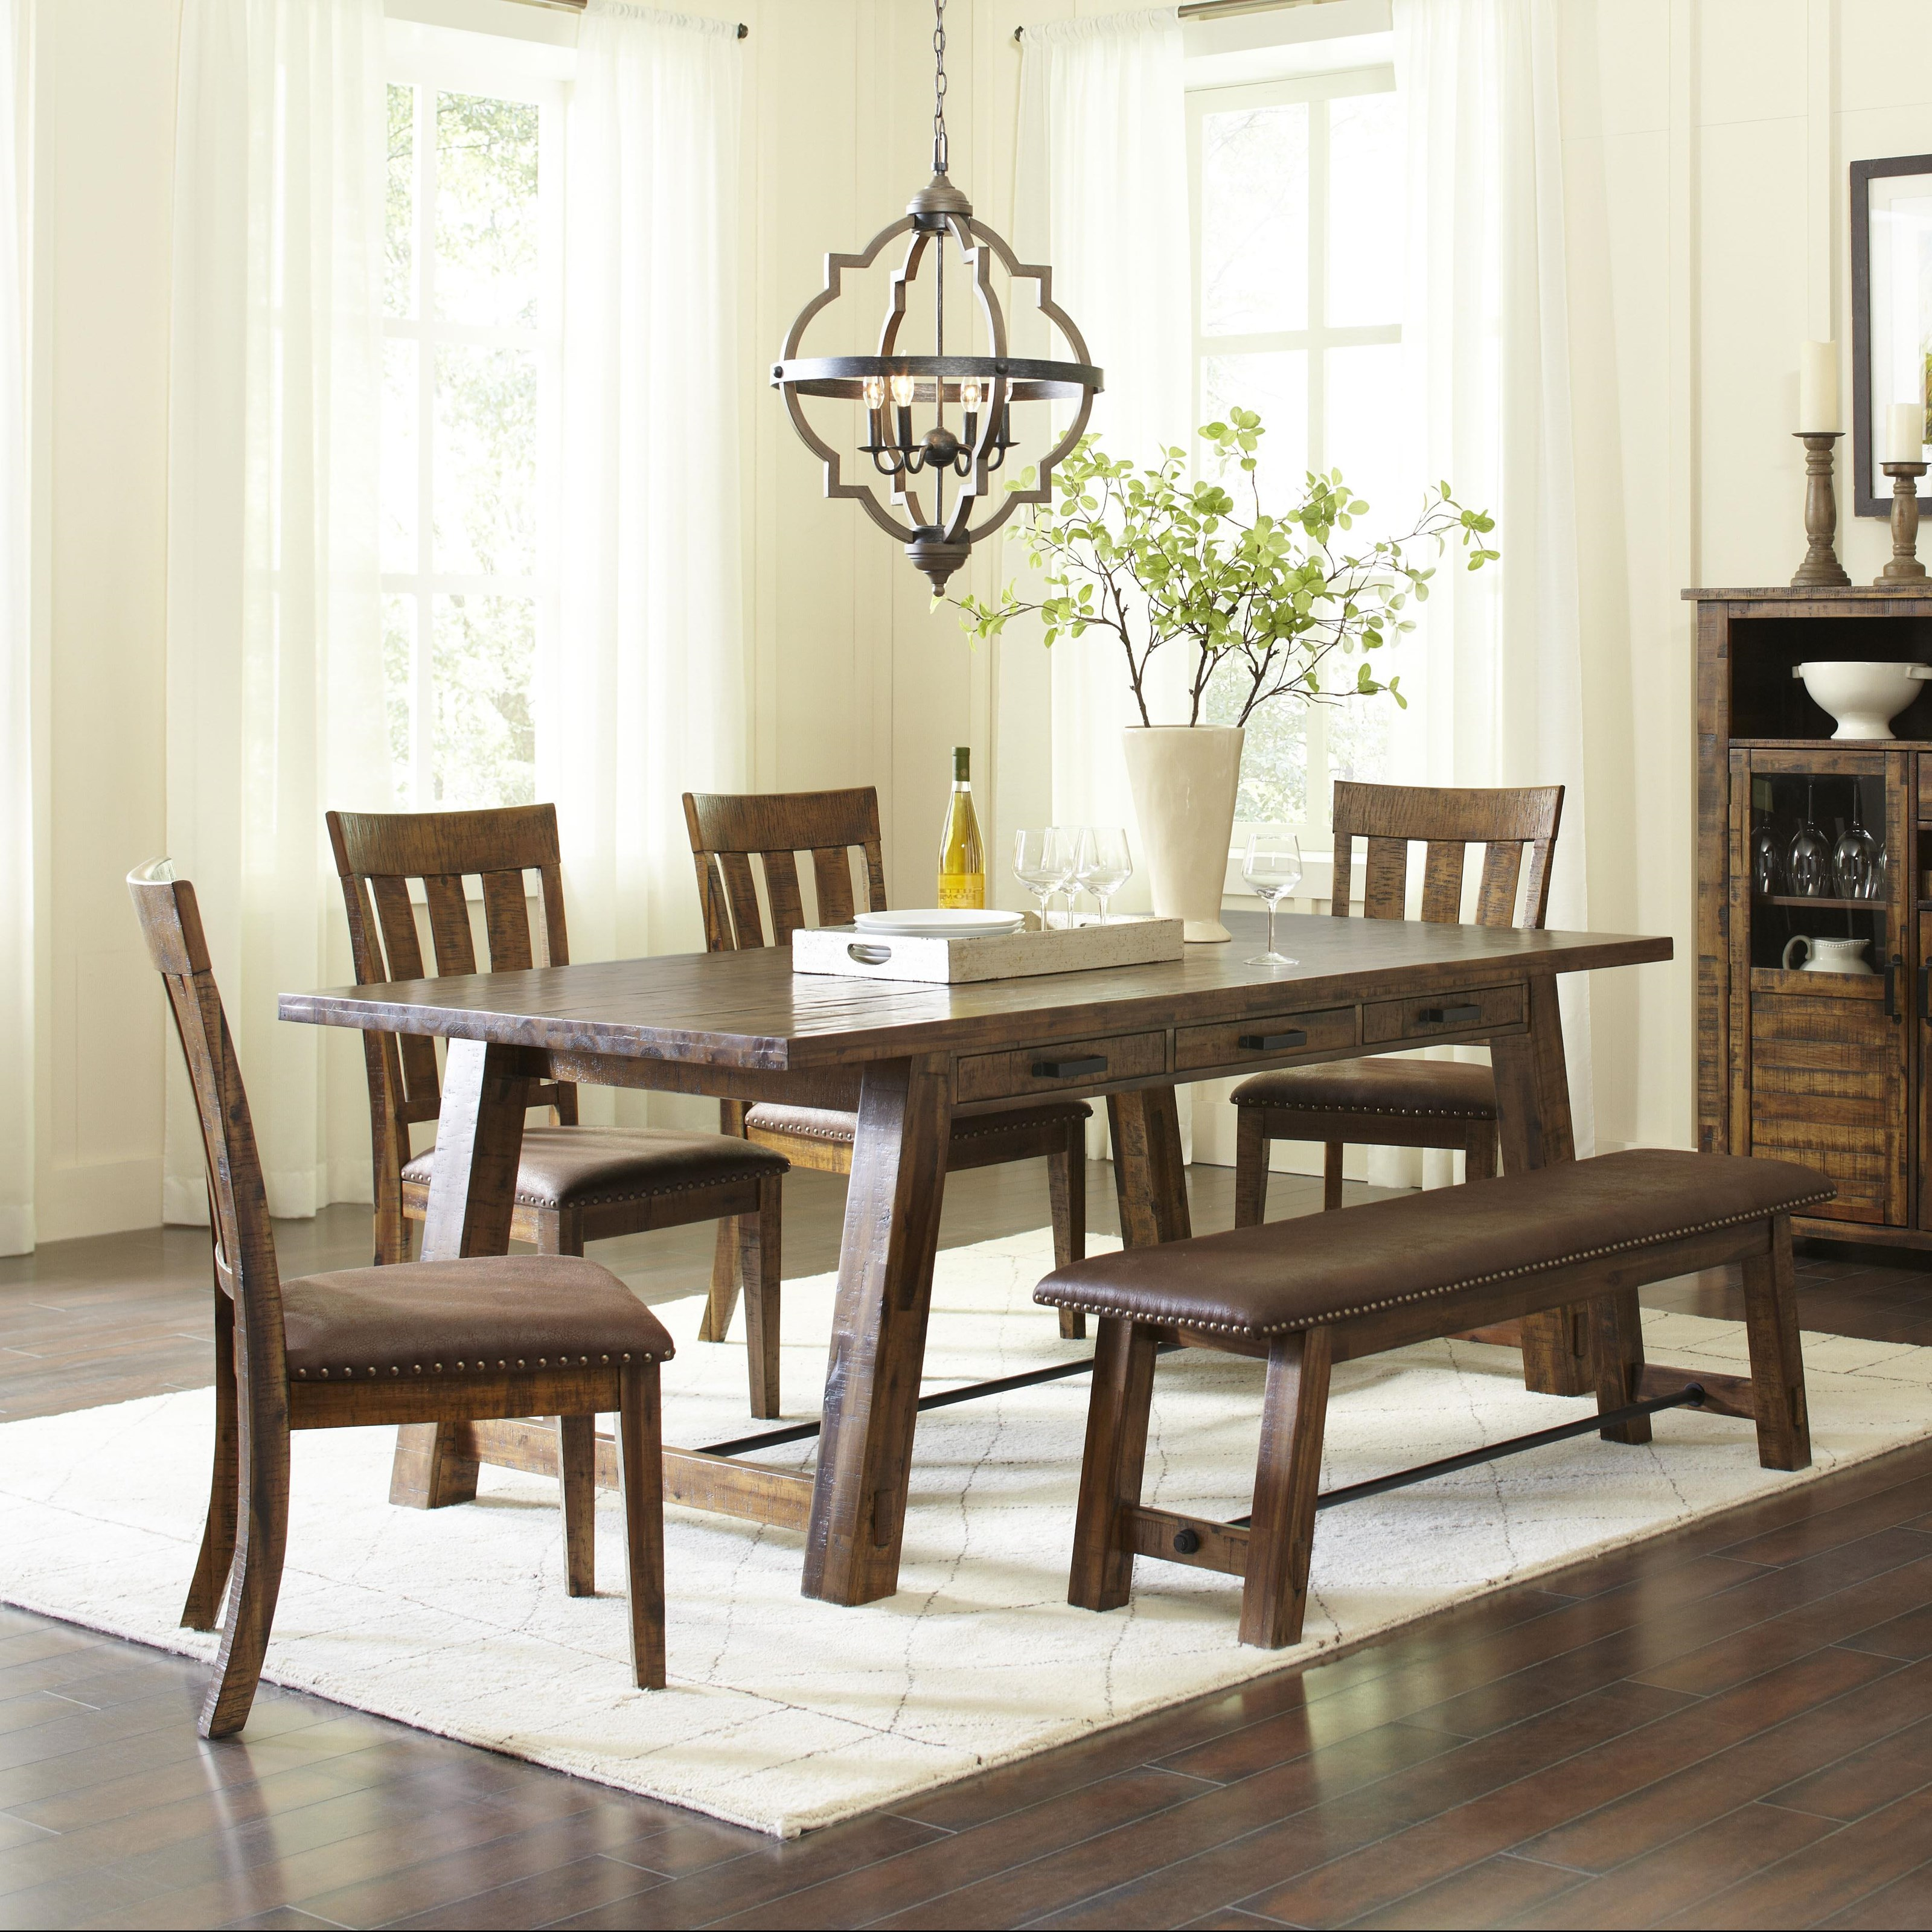 Cannon Valley Trestle Dining Table and Chair/Bench Set by Jofran at Stoney Creek Furniture